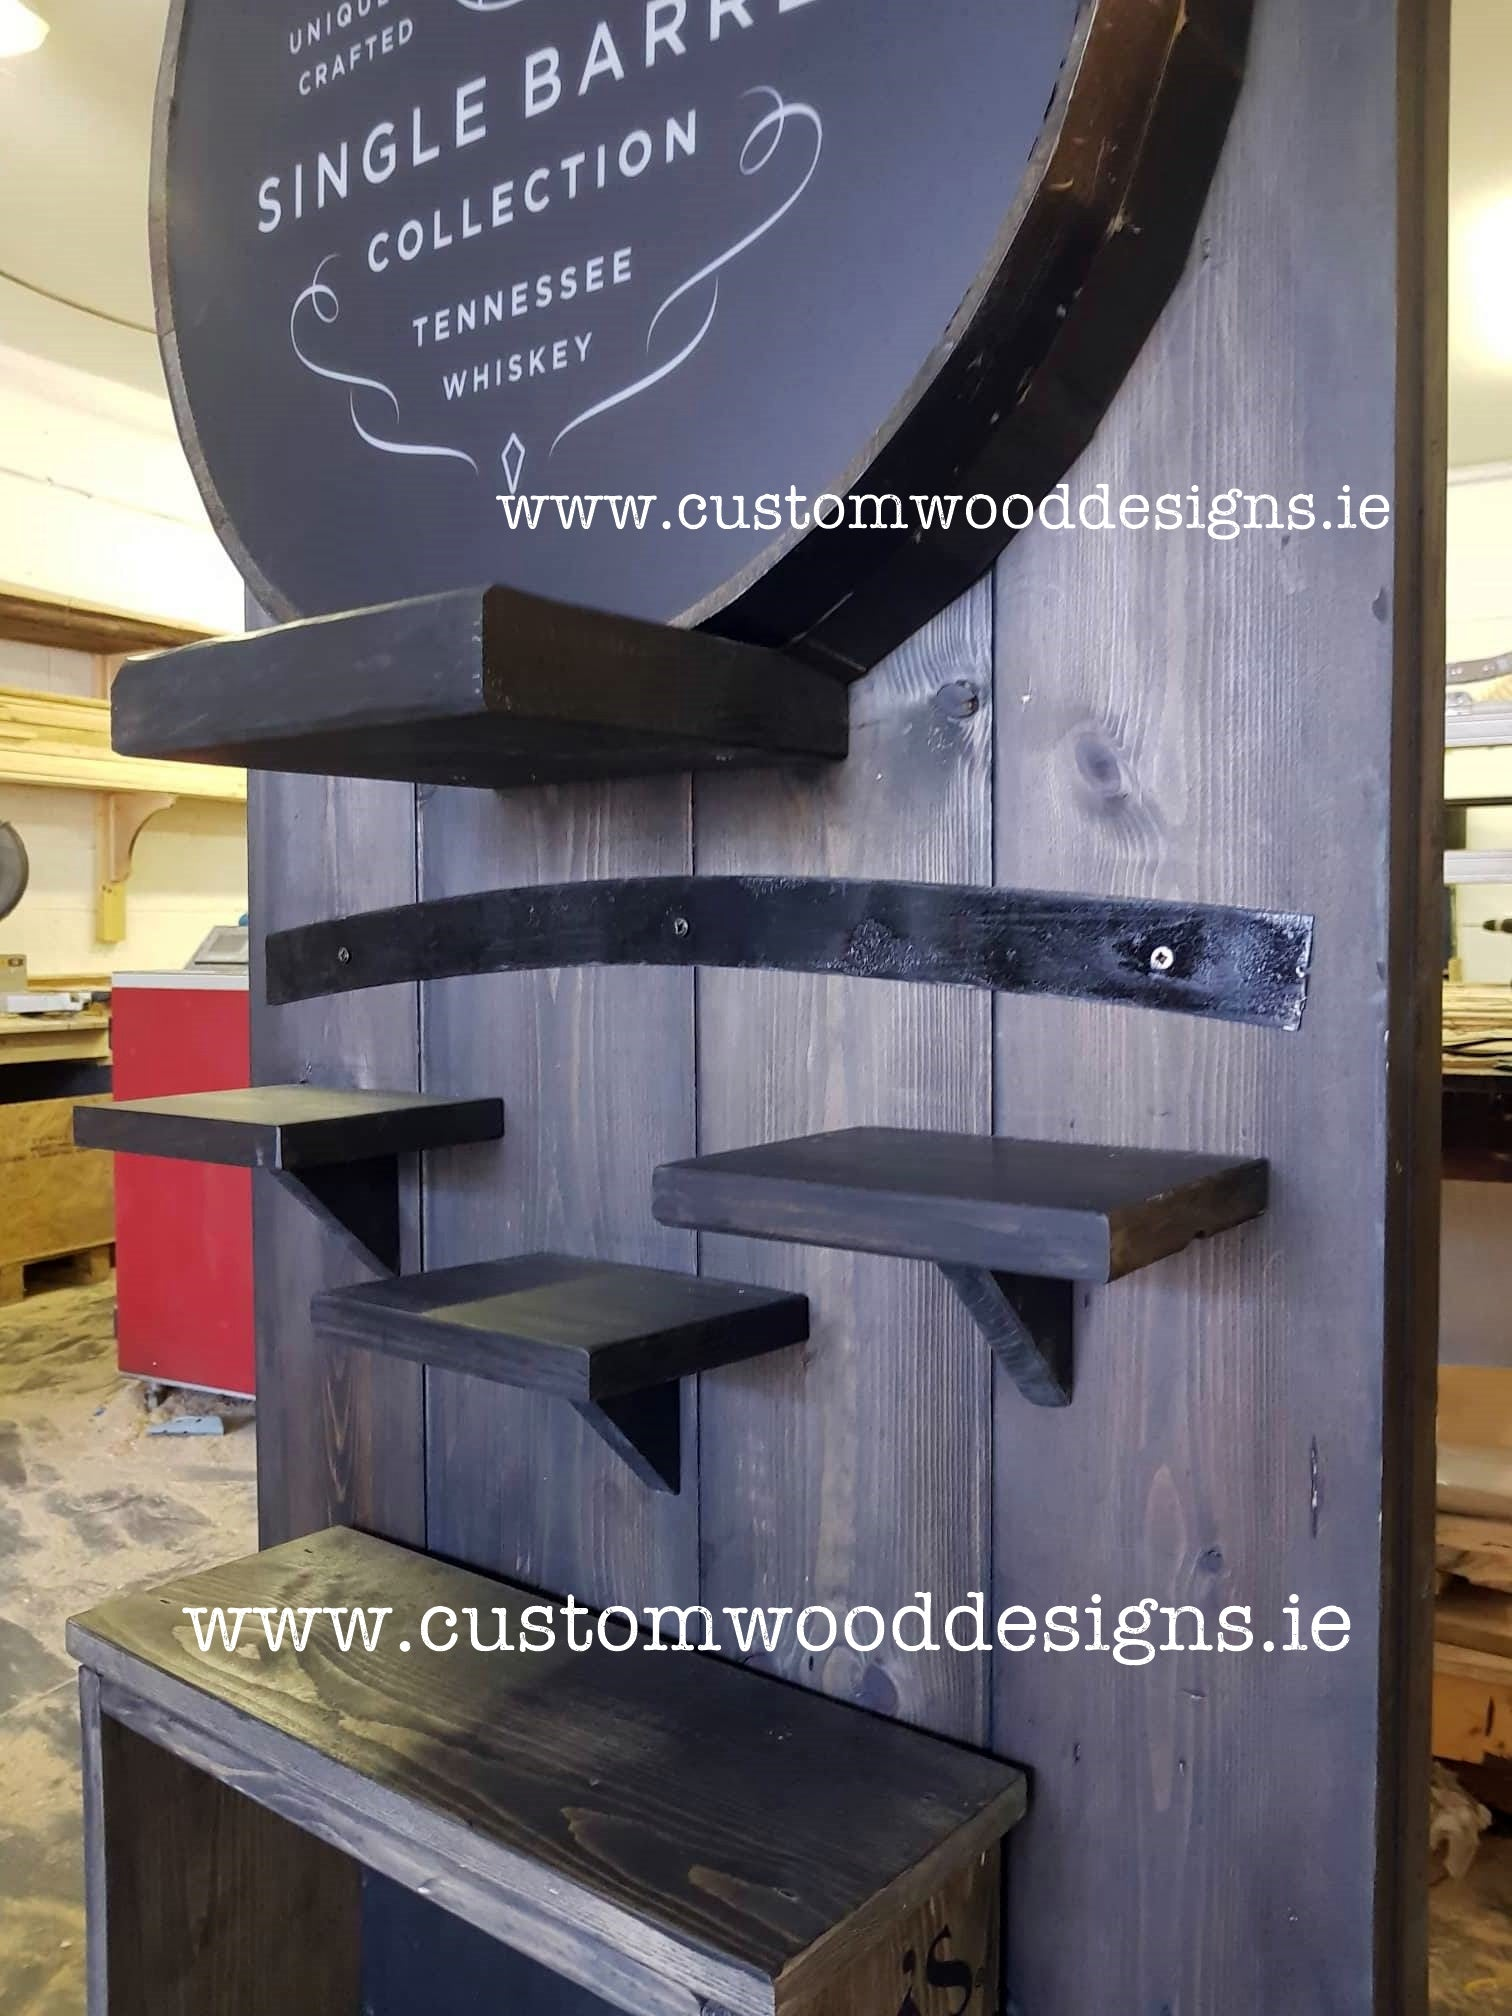 black rustic with light jack daniels point of sale retail display point of sale free standing europenan manufacturer custom wood designs Ireland Irish designs manufacture